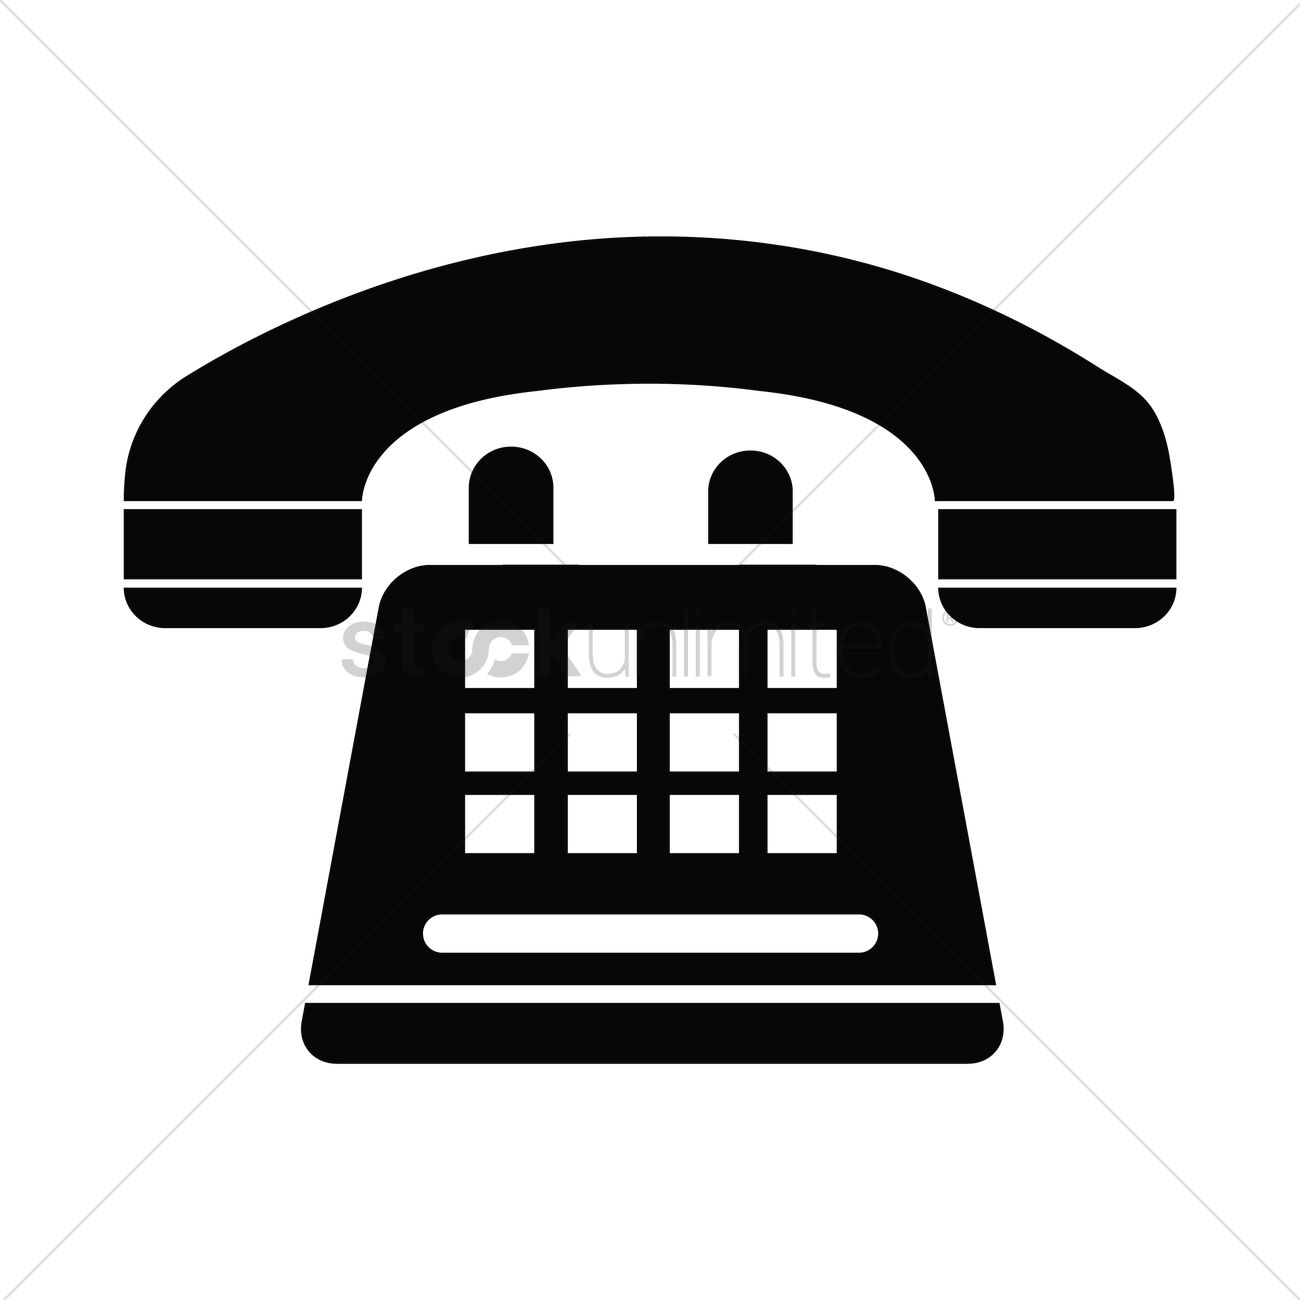 Silhouette of a telephone Vector Image.